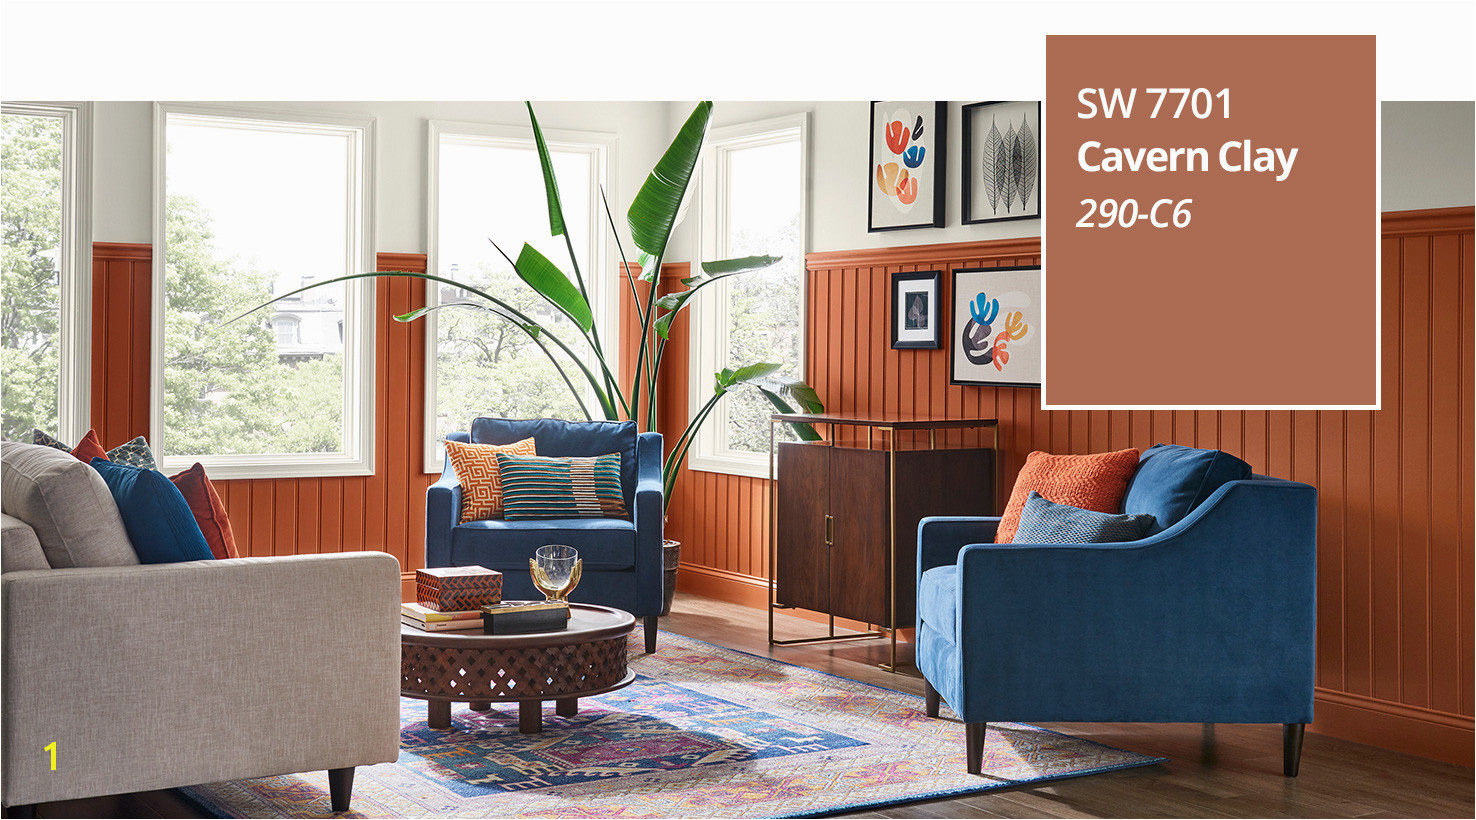 SW Color of the Year 2019 Cavern Clay SW 7701 slide 3